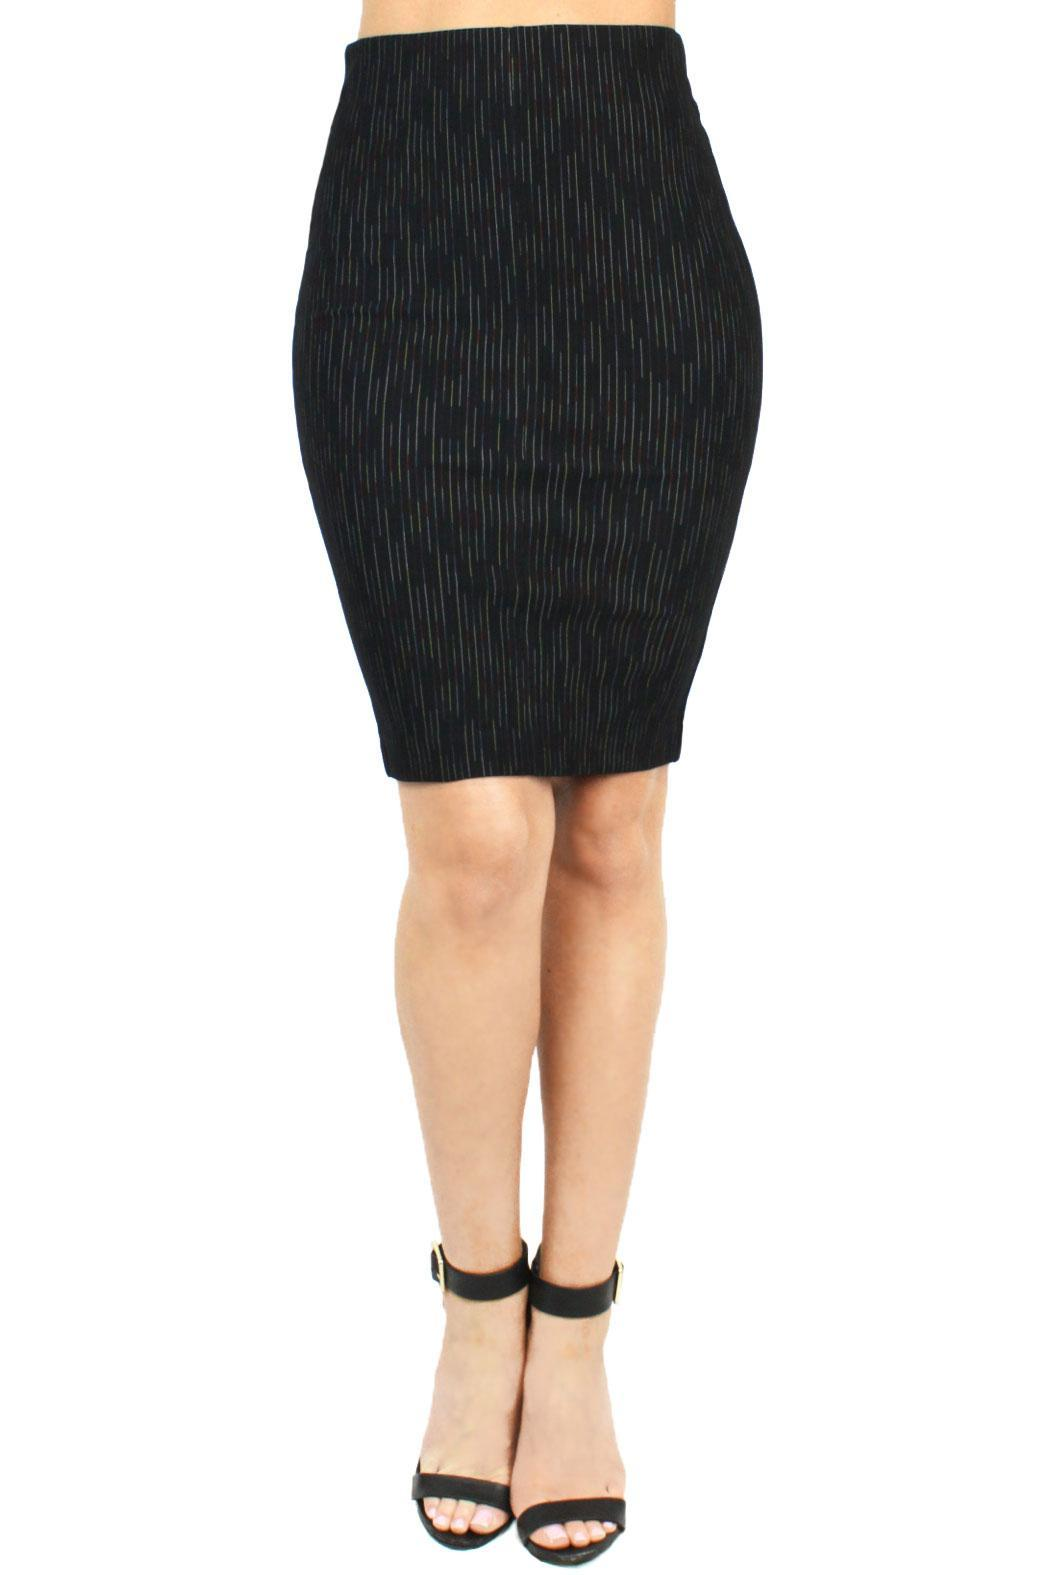 Sugar Lips Pinstripe Pencil Skirt from Los Angeles by B. POY & JO ...